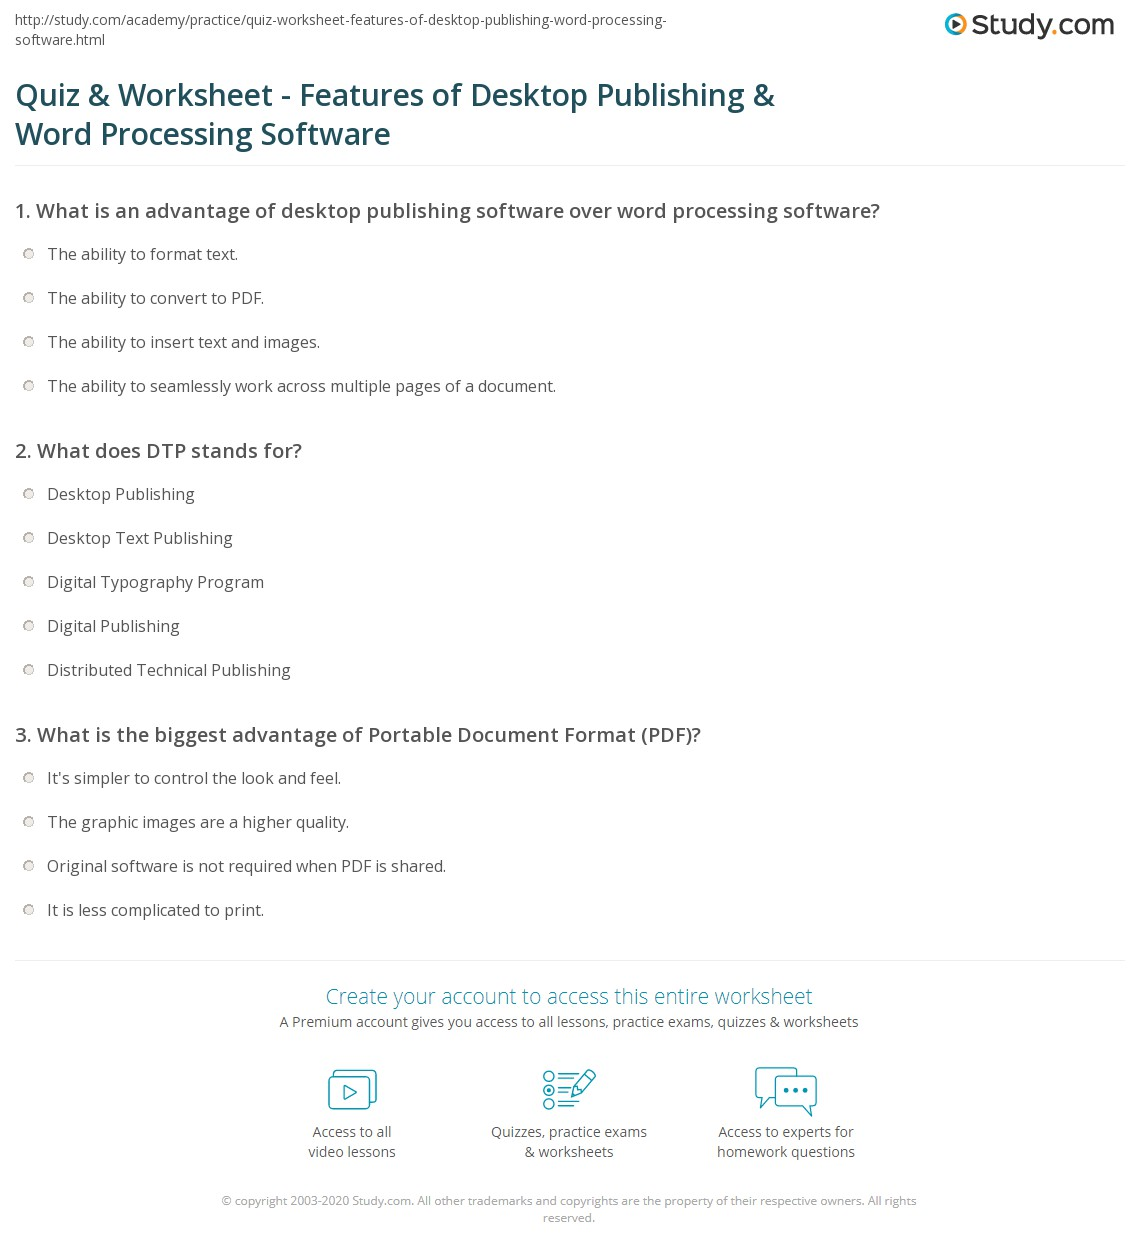 quiz & worksheet - features of desktop publishing & word processing